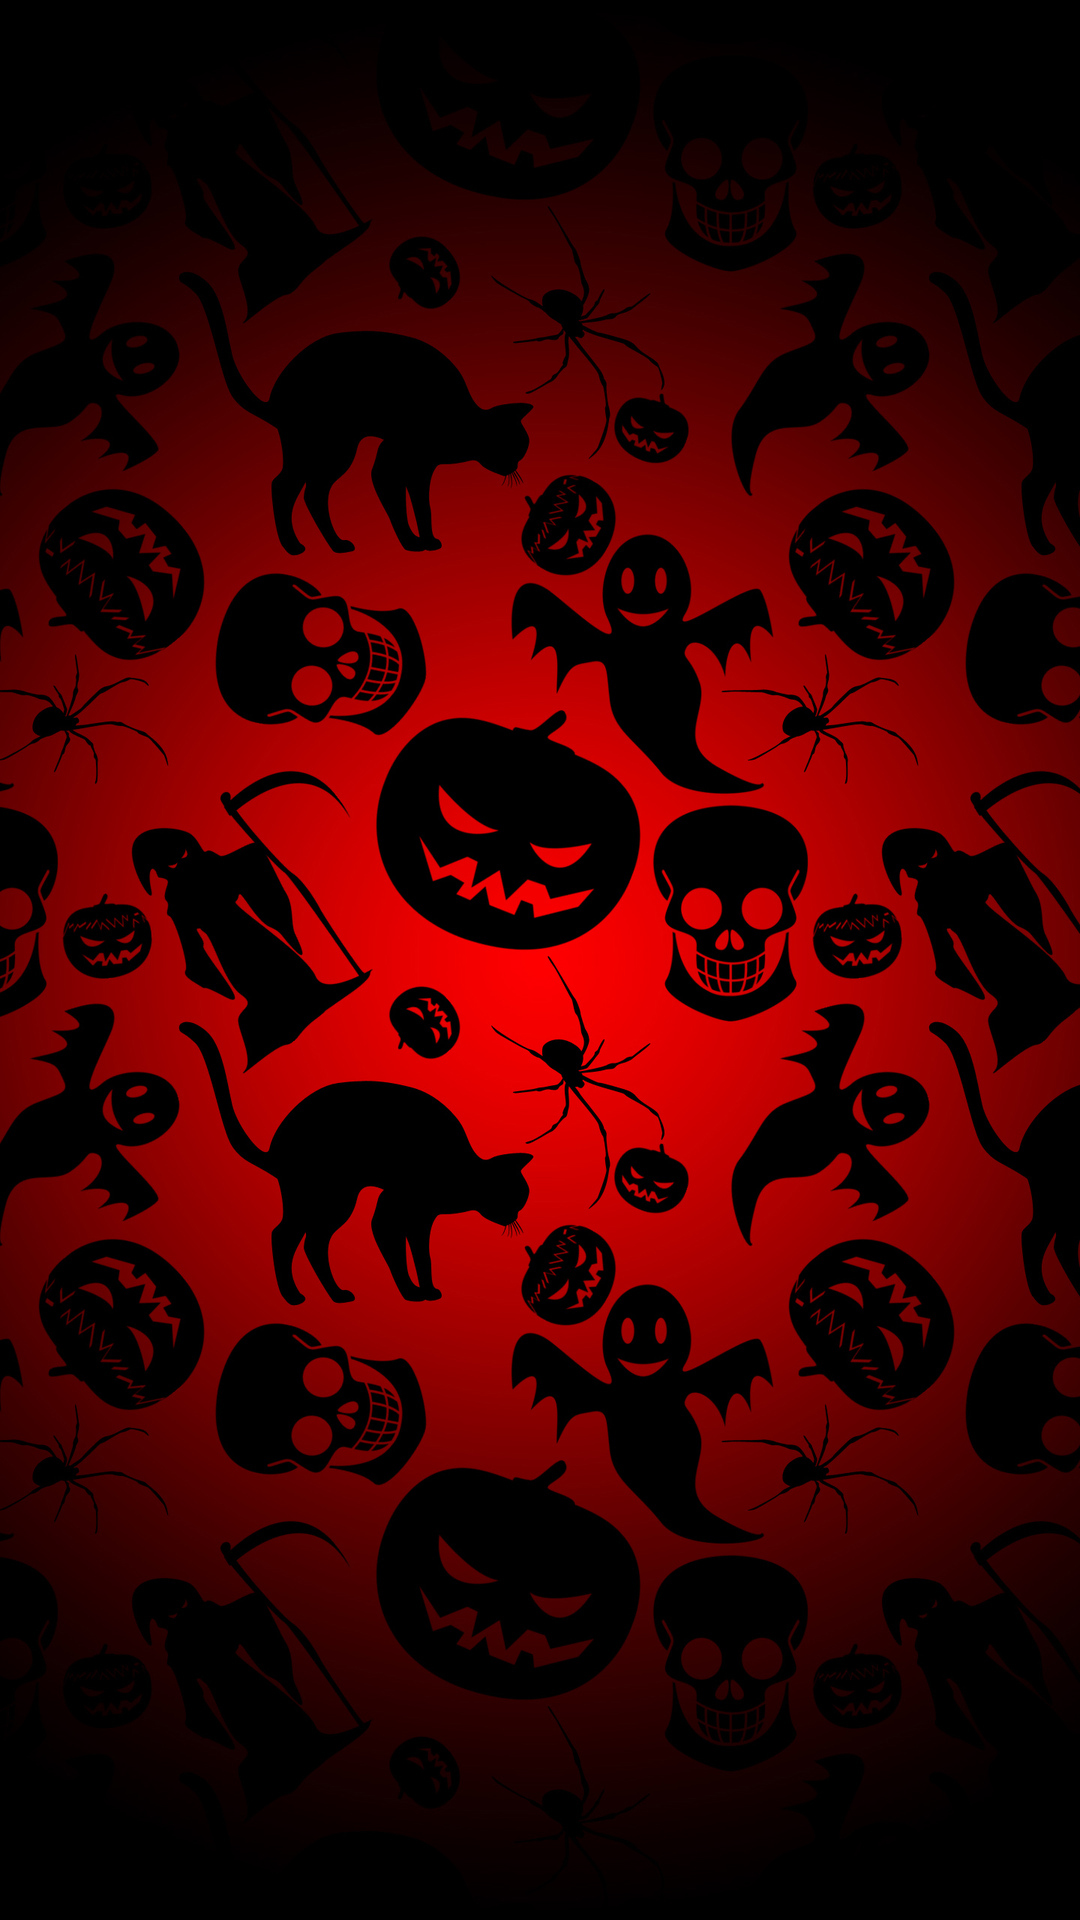 Halloween Wallpapers Iphone Y Android Fondos De Pantalla HD Wallpapers Download Free Images Wallpaper [1000image.com]